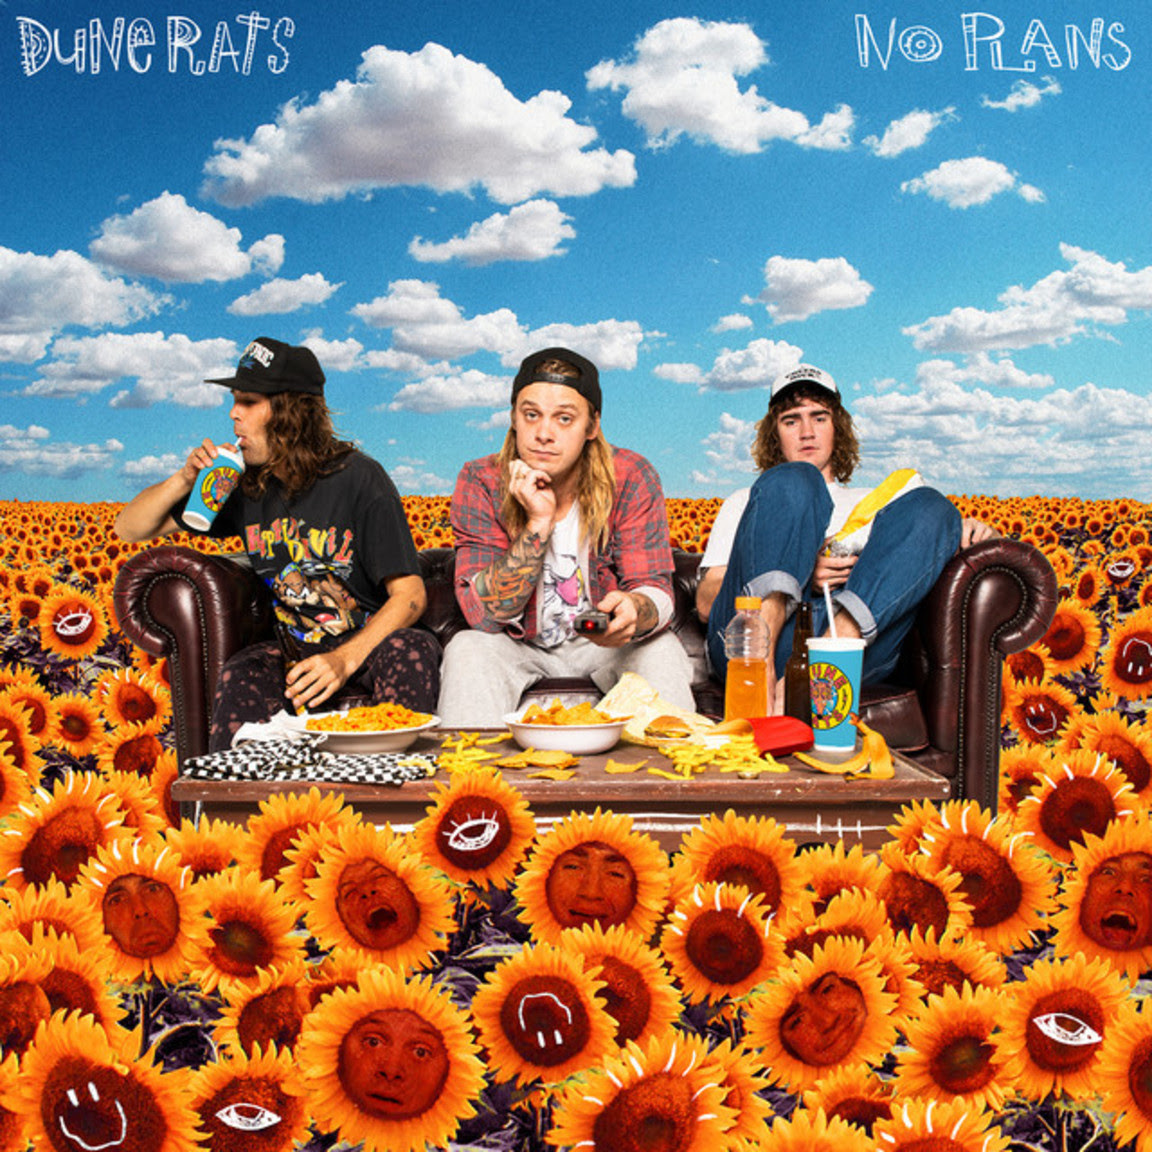 """Australia's Dune Rats have shared their new song """"No Plans"""""""